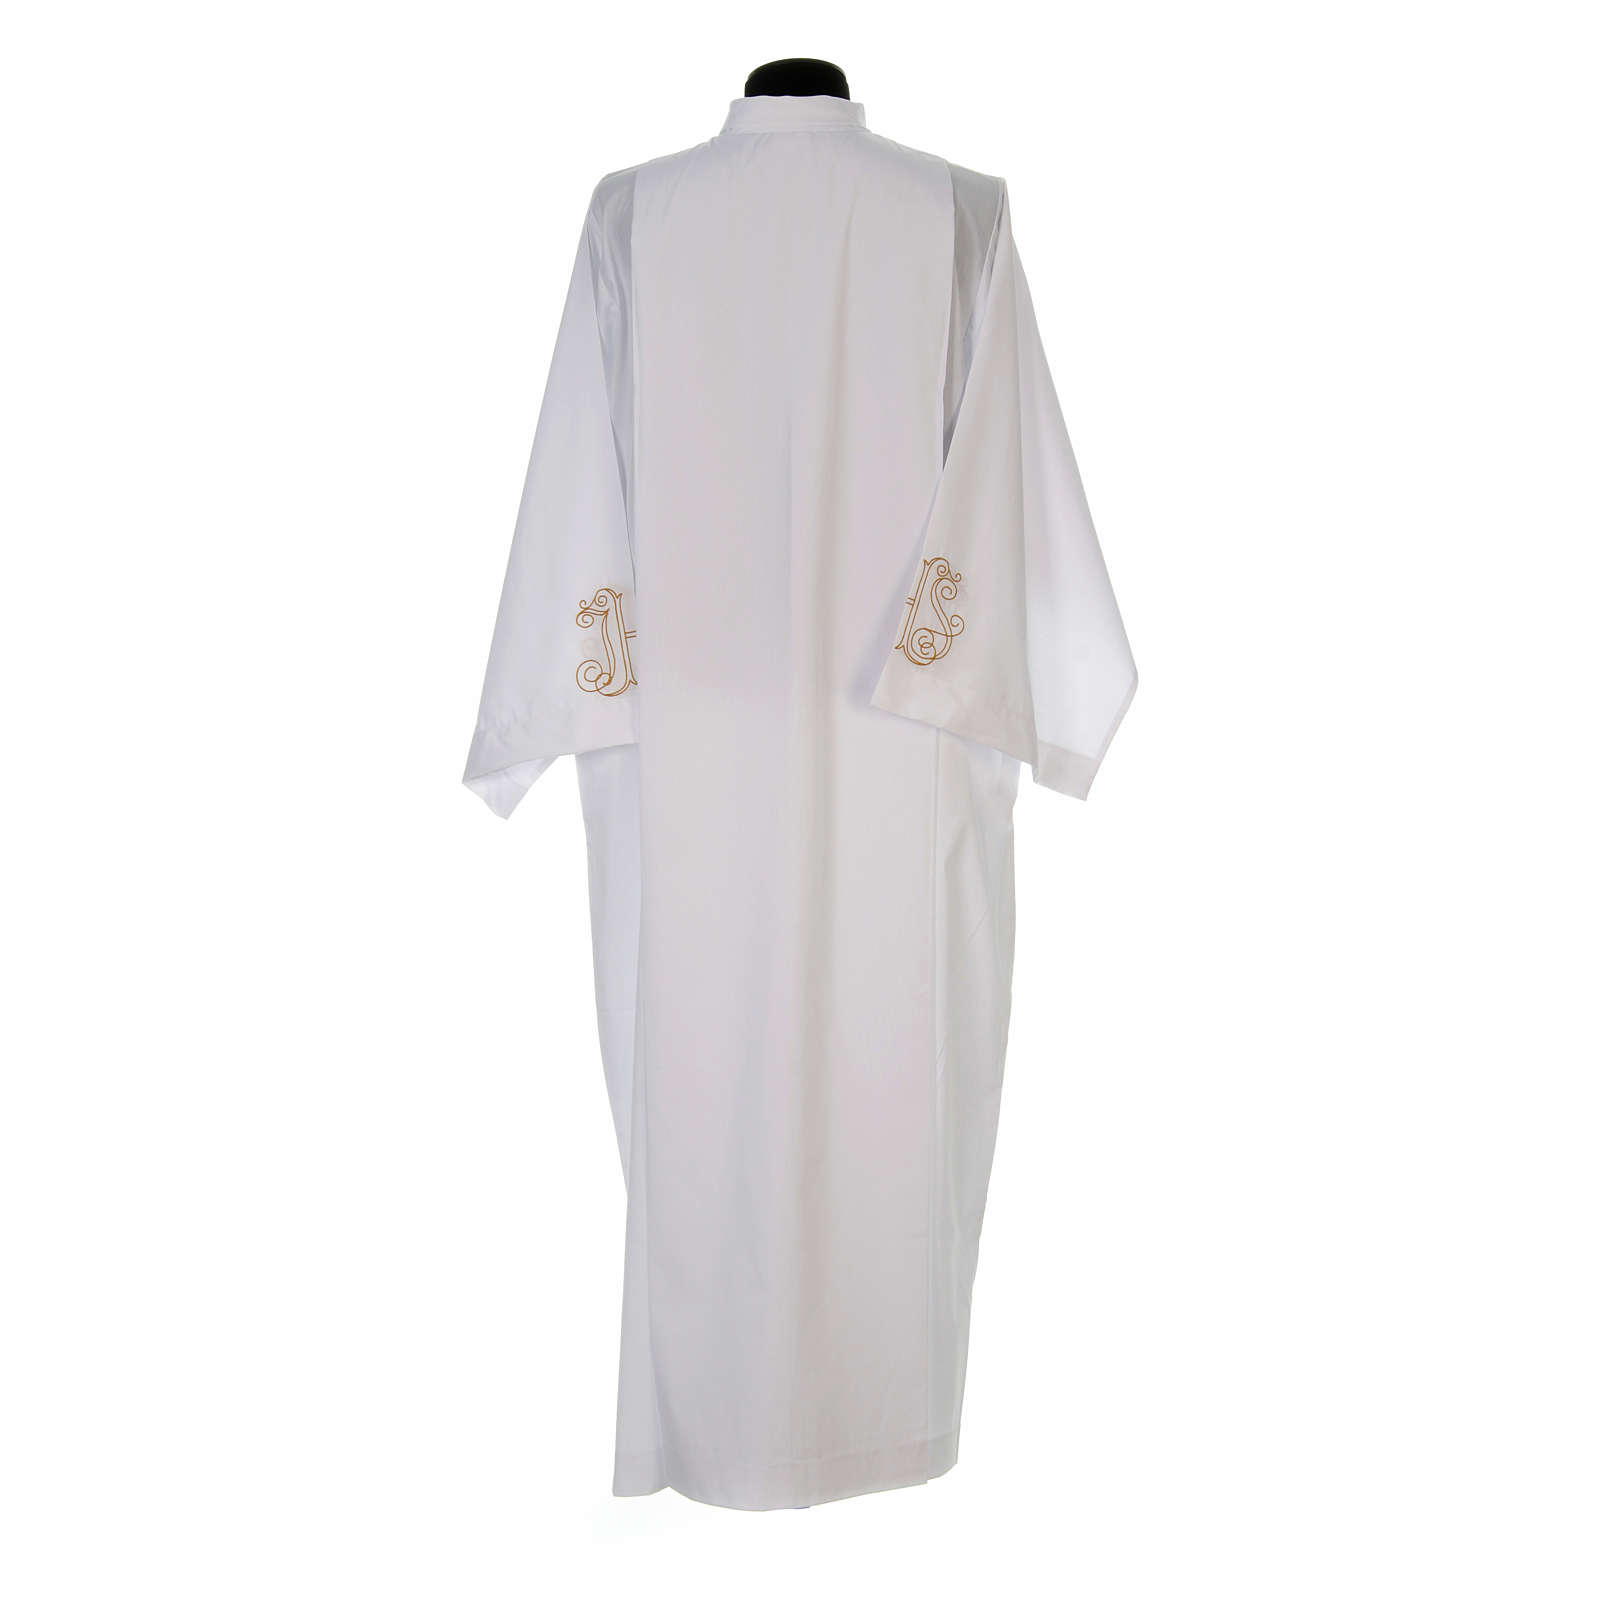 White alb with pleats and embroidered IHS symbol in cotton mix 4